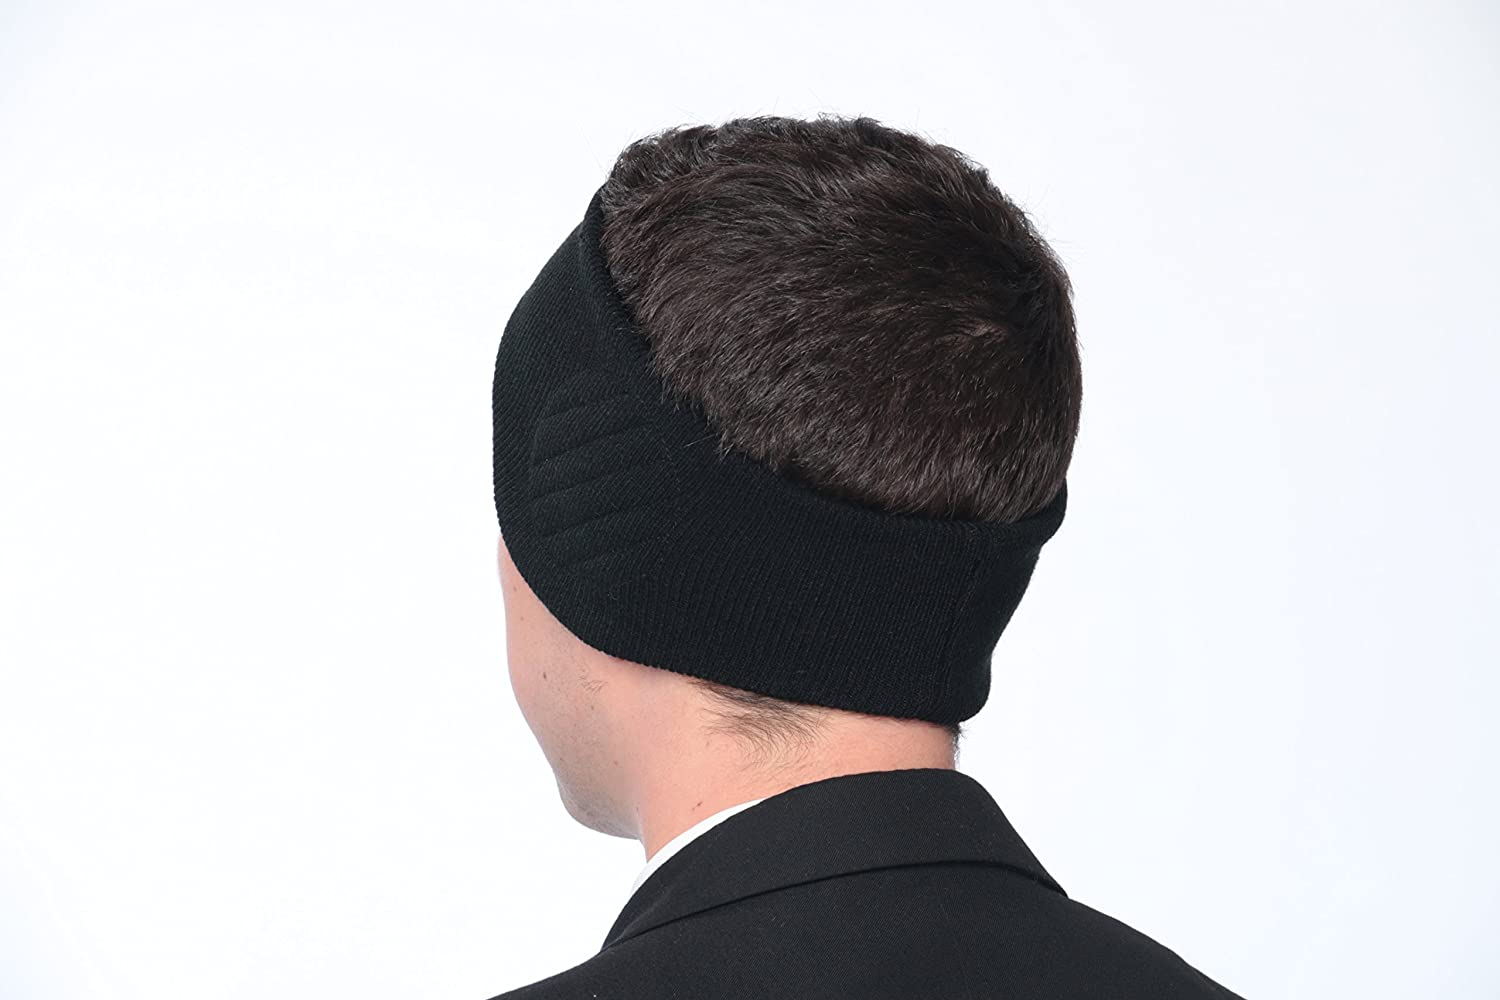 Sanremo Fashions Extra Warm Knit Ear Warmer Ear Band Stretch Head Band Ear Muff